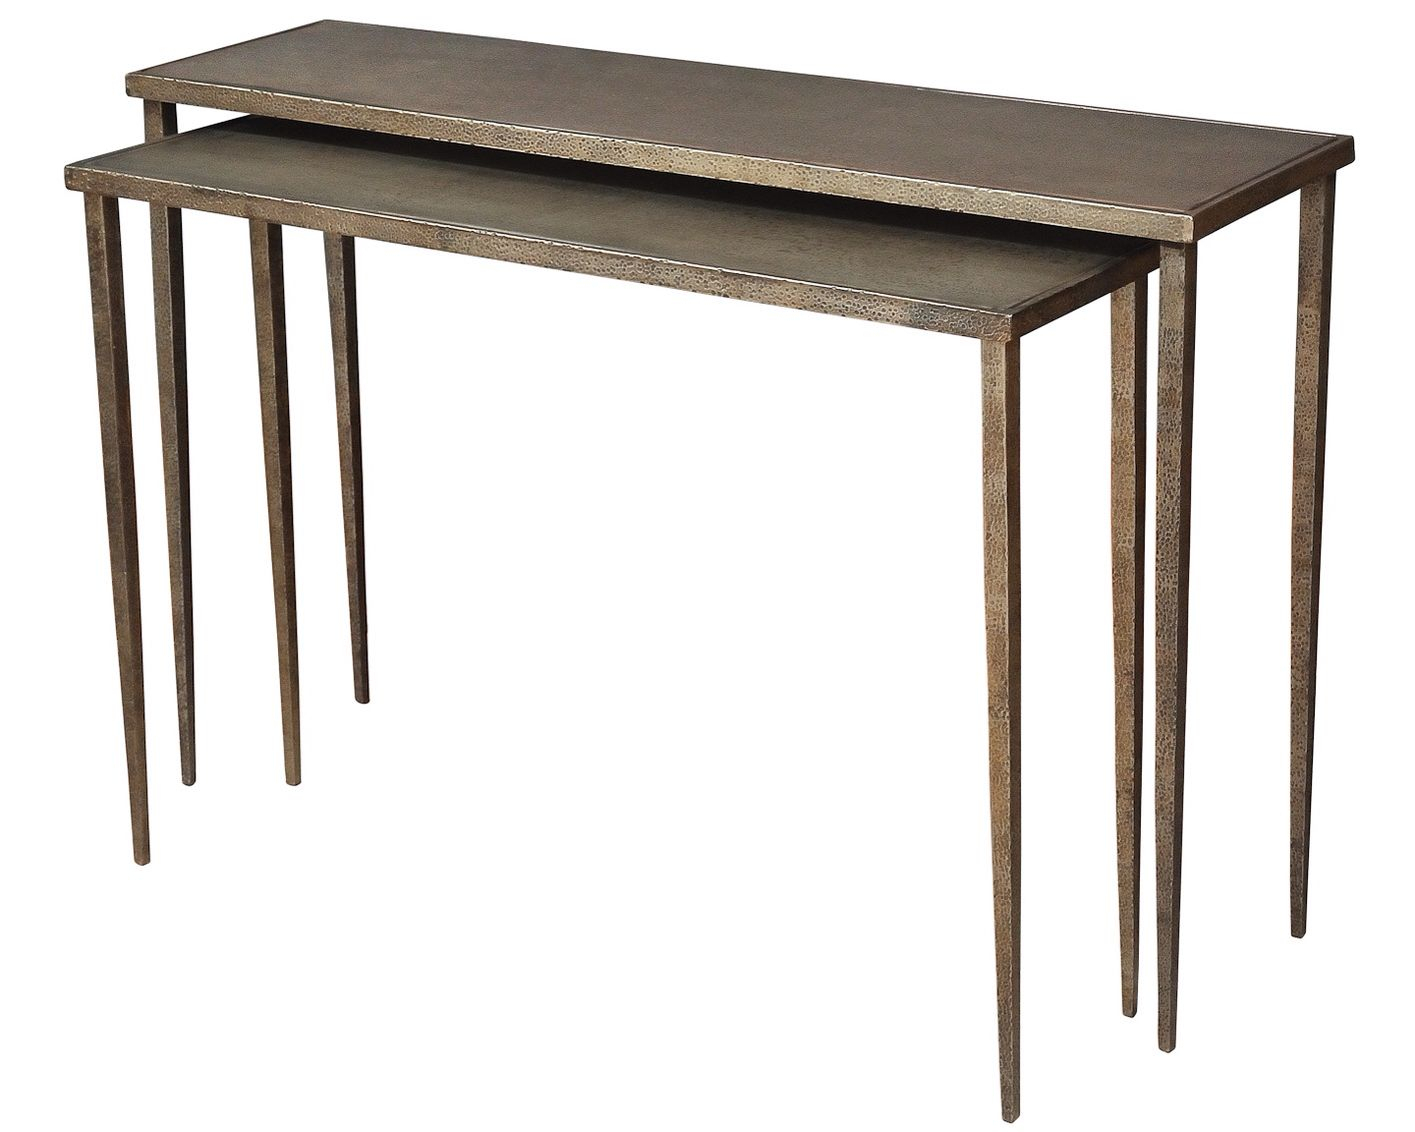 Hammered Sheet Metal Console Tables | My Designs | Pinterest intended for Parsons Concrete Top & Stainless Steel Base 48X16 Console Tables (Image 15 of 30)